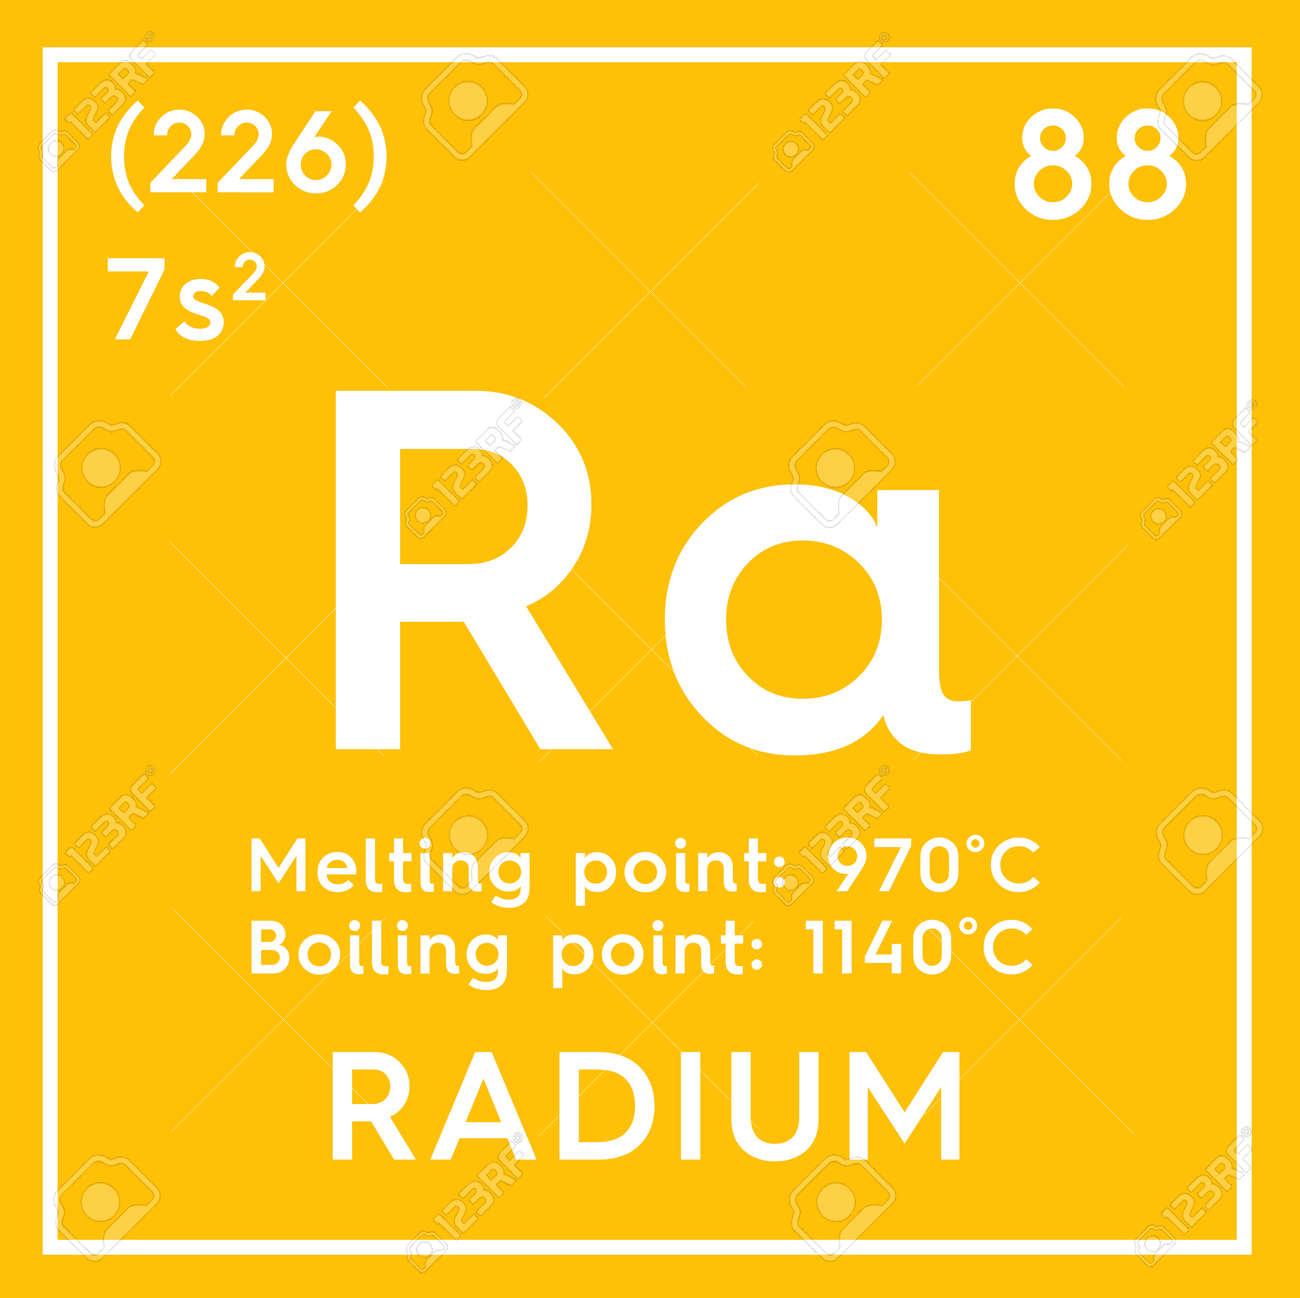 Radium alkaline earth metals chemical element of mendeleevs radium alkaline earth metals chemical element of mendeleevs periodic table radium in square gamestrikefo Images